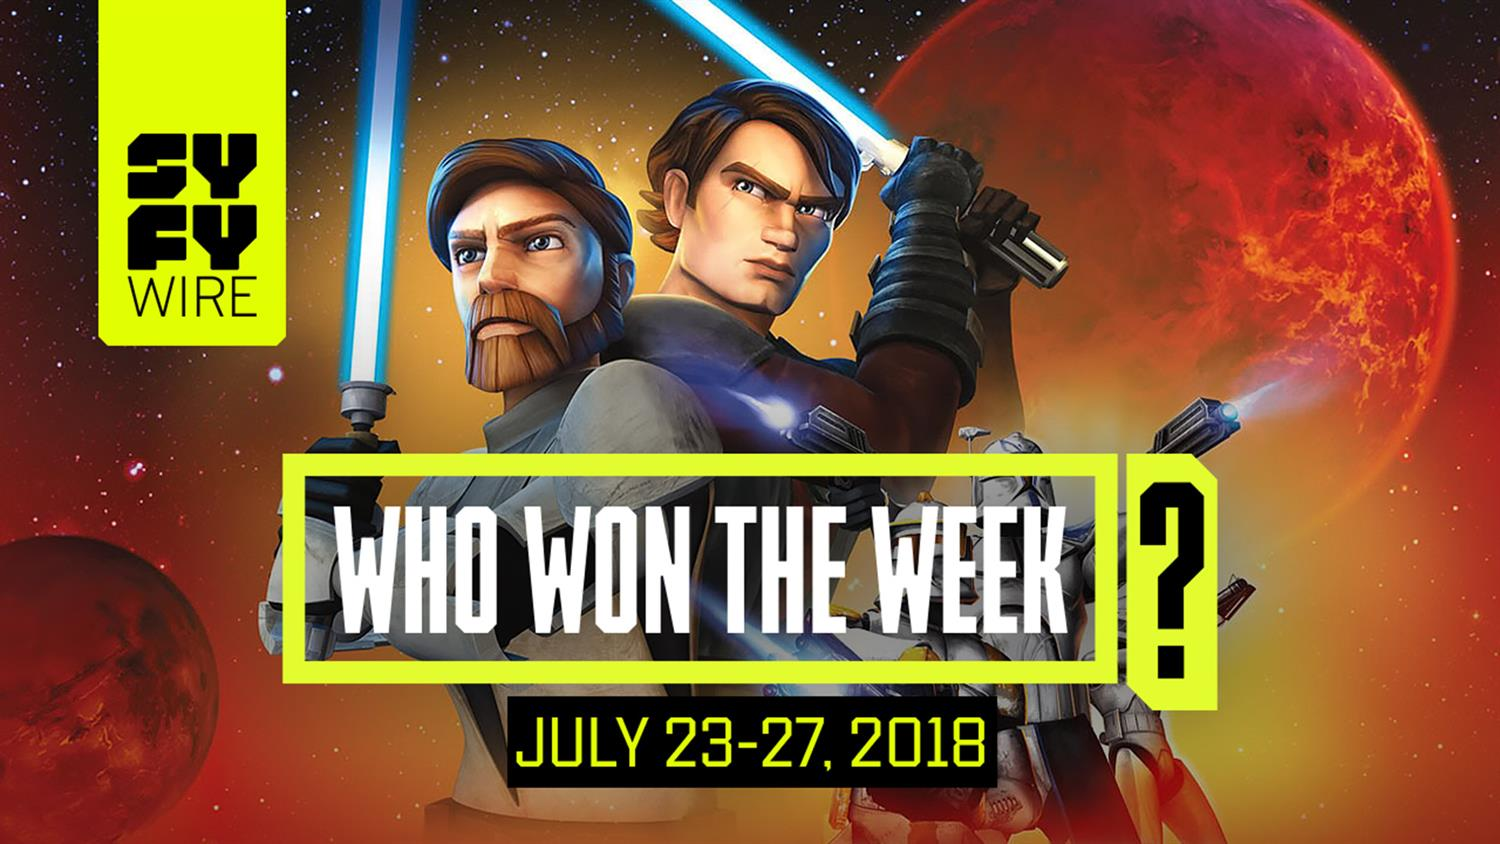 SDCC Aftermath: Who Won The Week For July 23-27